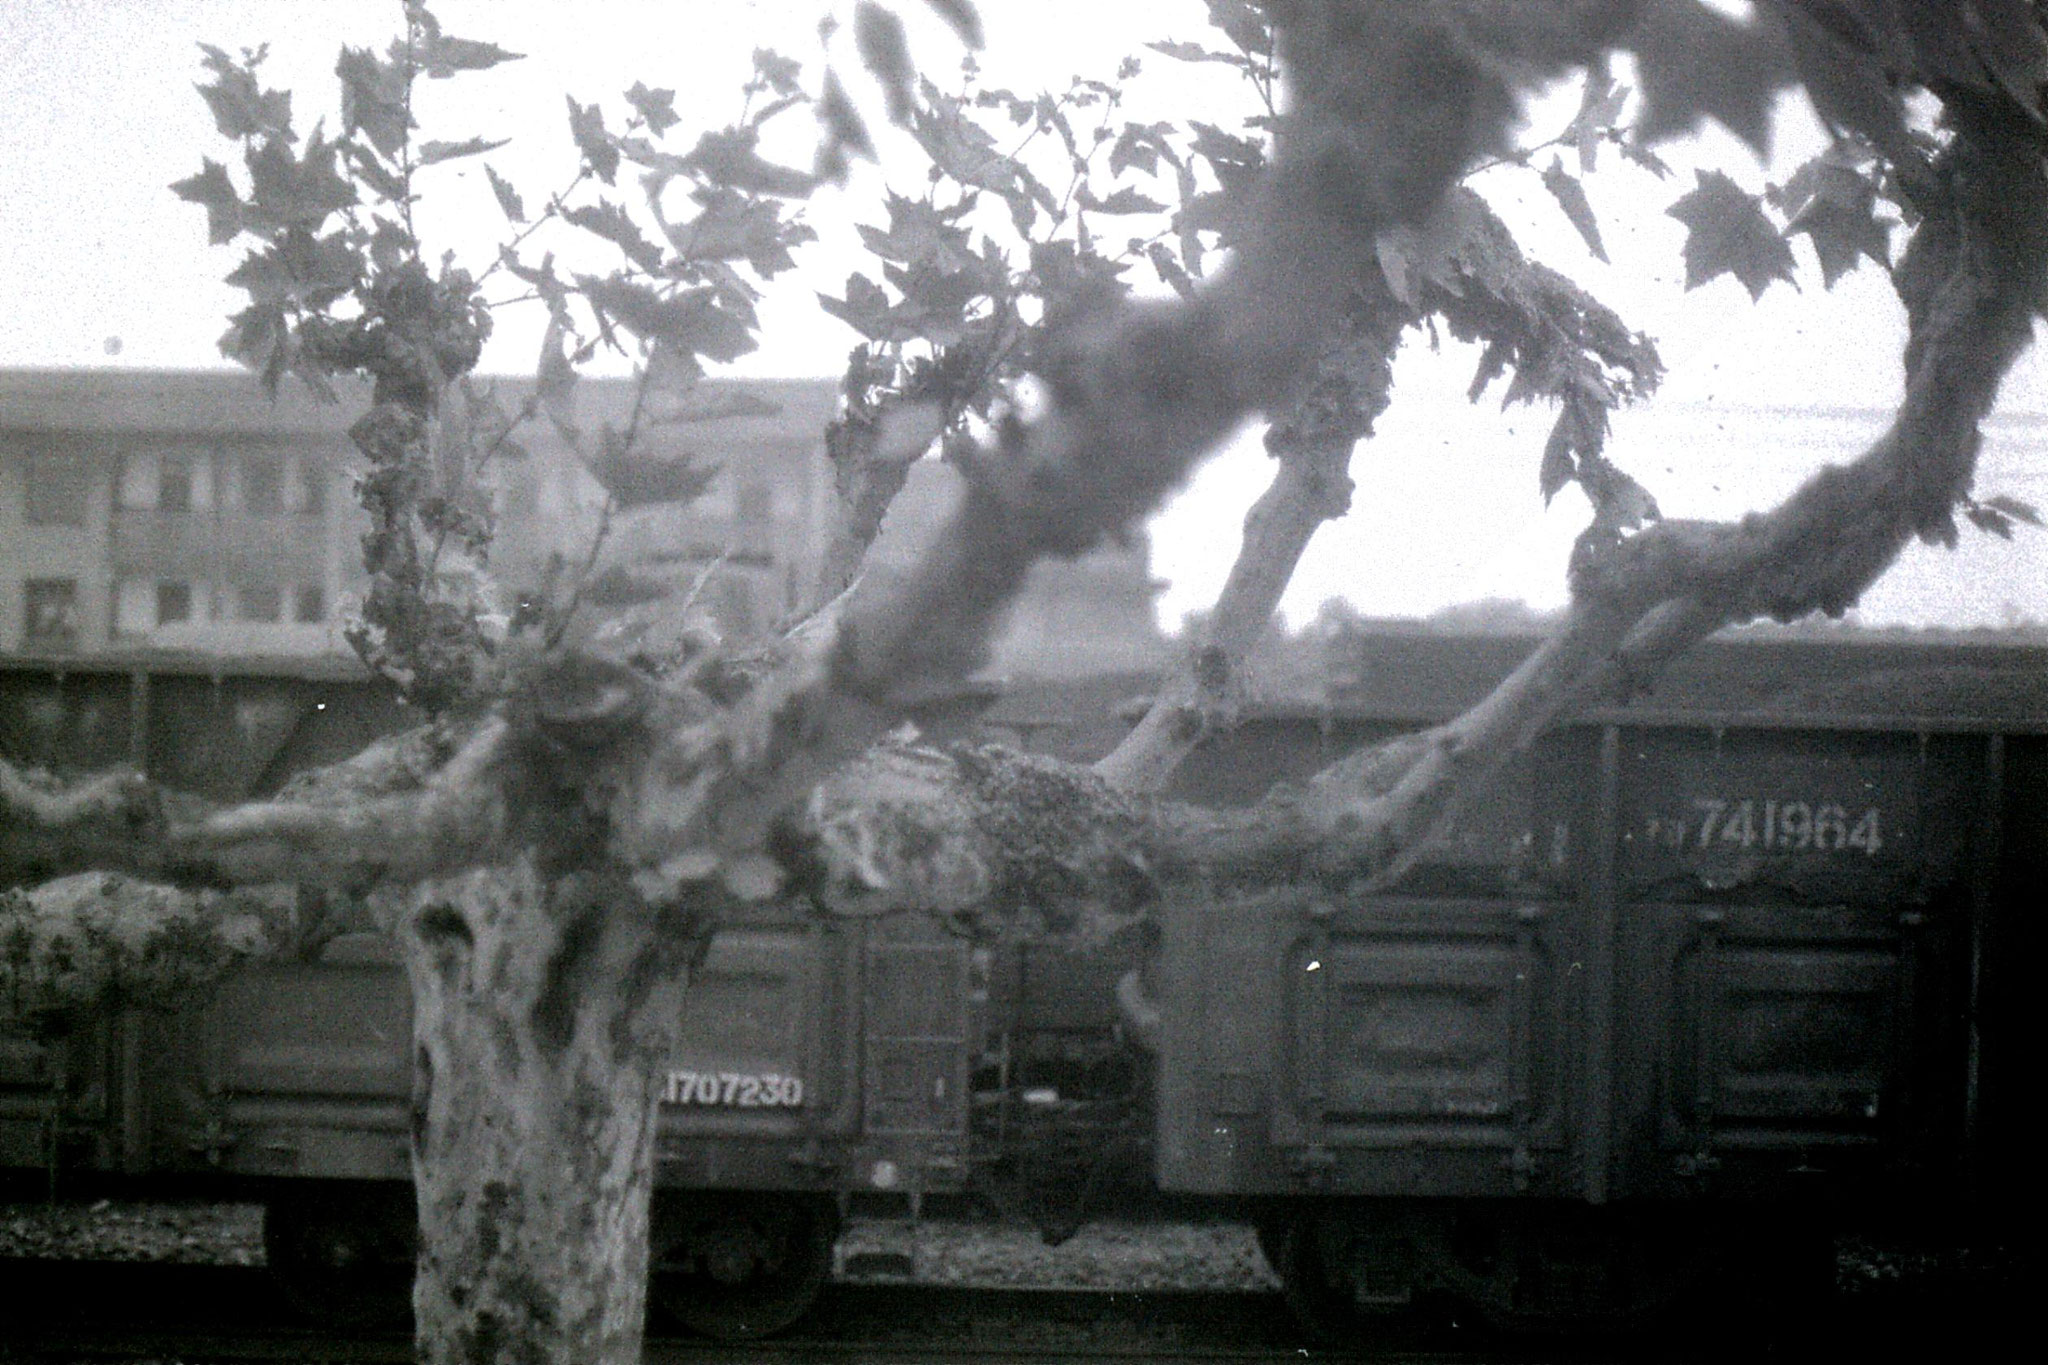 21/5/1989: 0: Quzhou bees in tree next to train